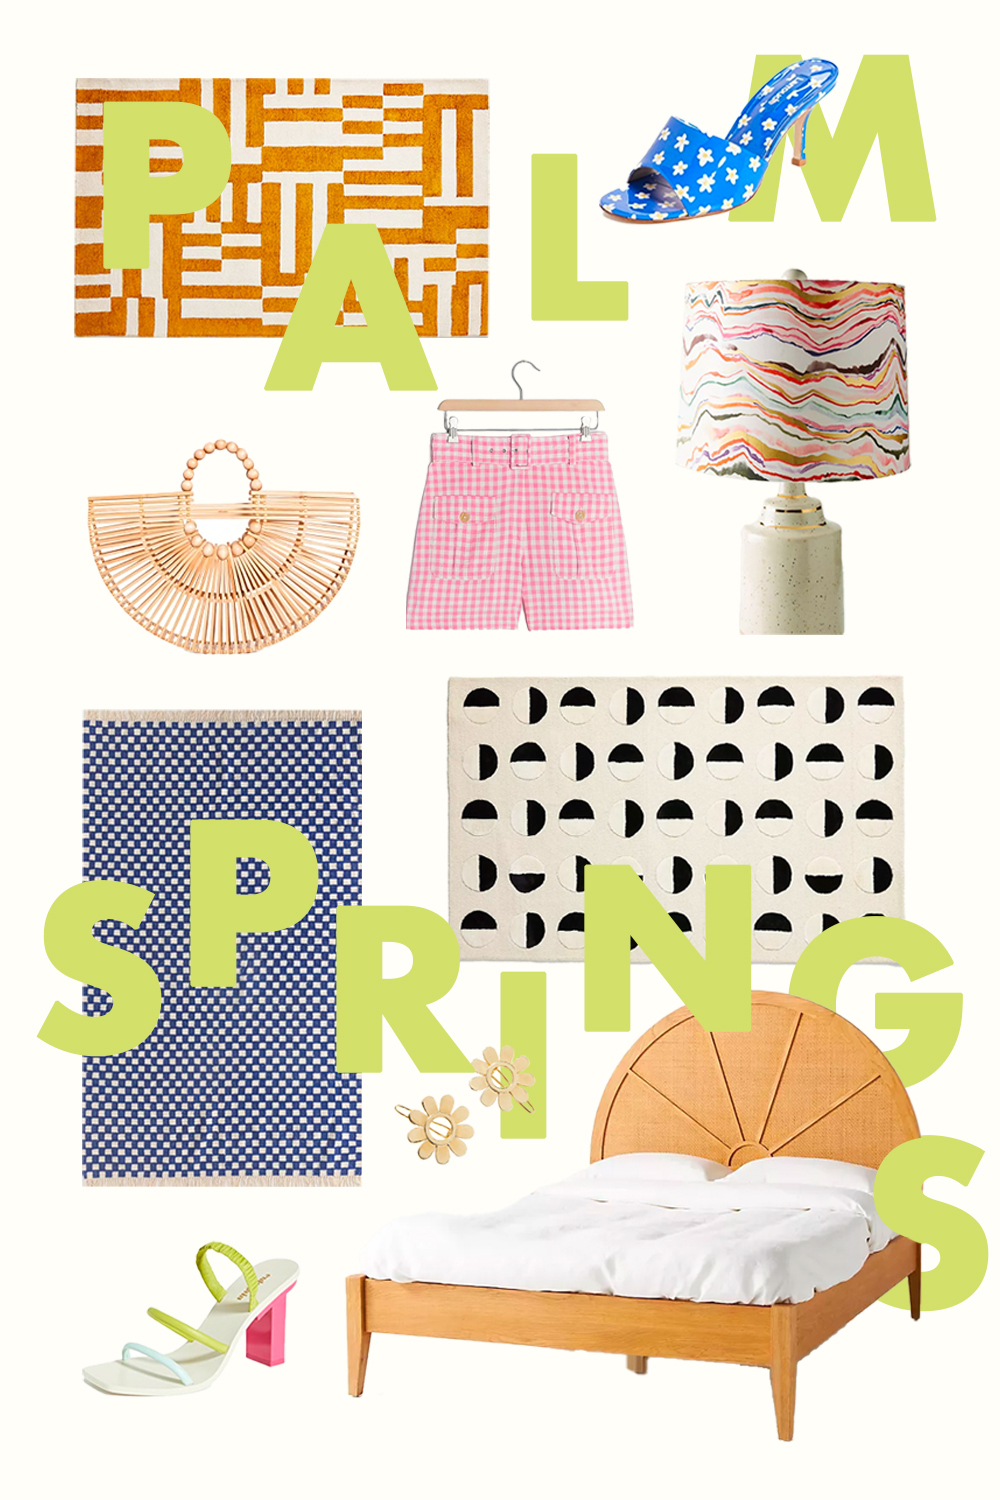 graphic of several items with a palm springs theme